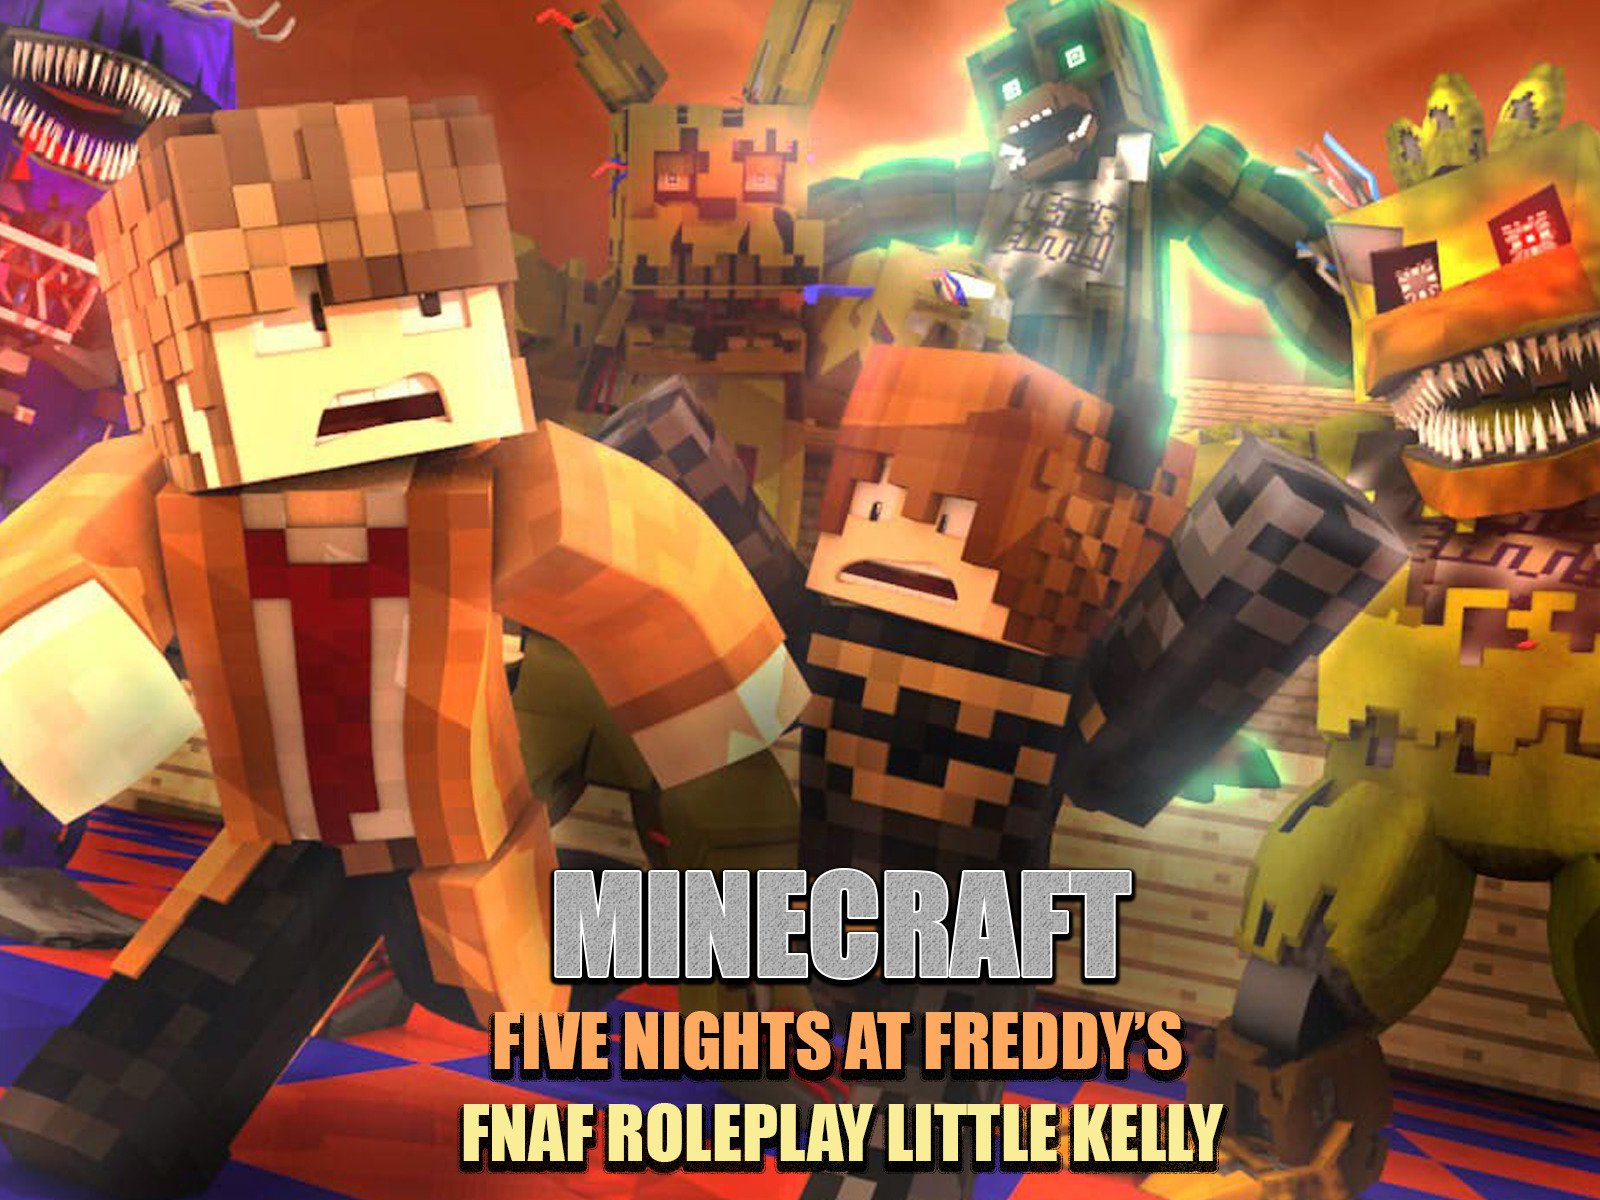 Amazon com: Five Nights at Freddy's - Minecraft Fnaf